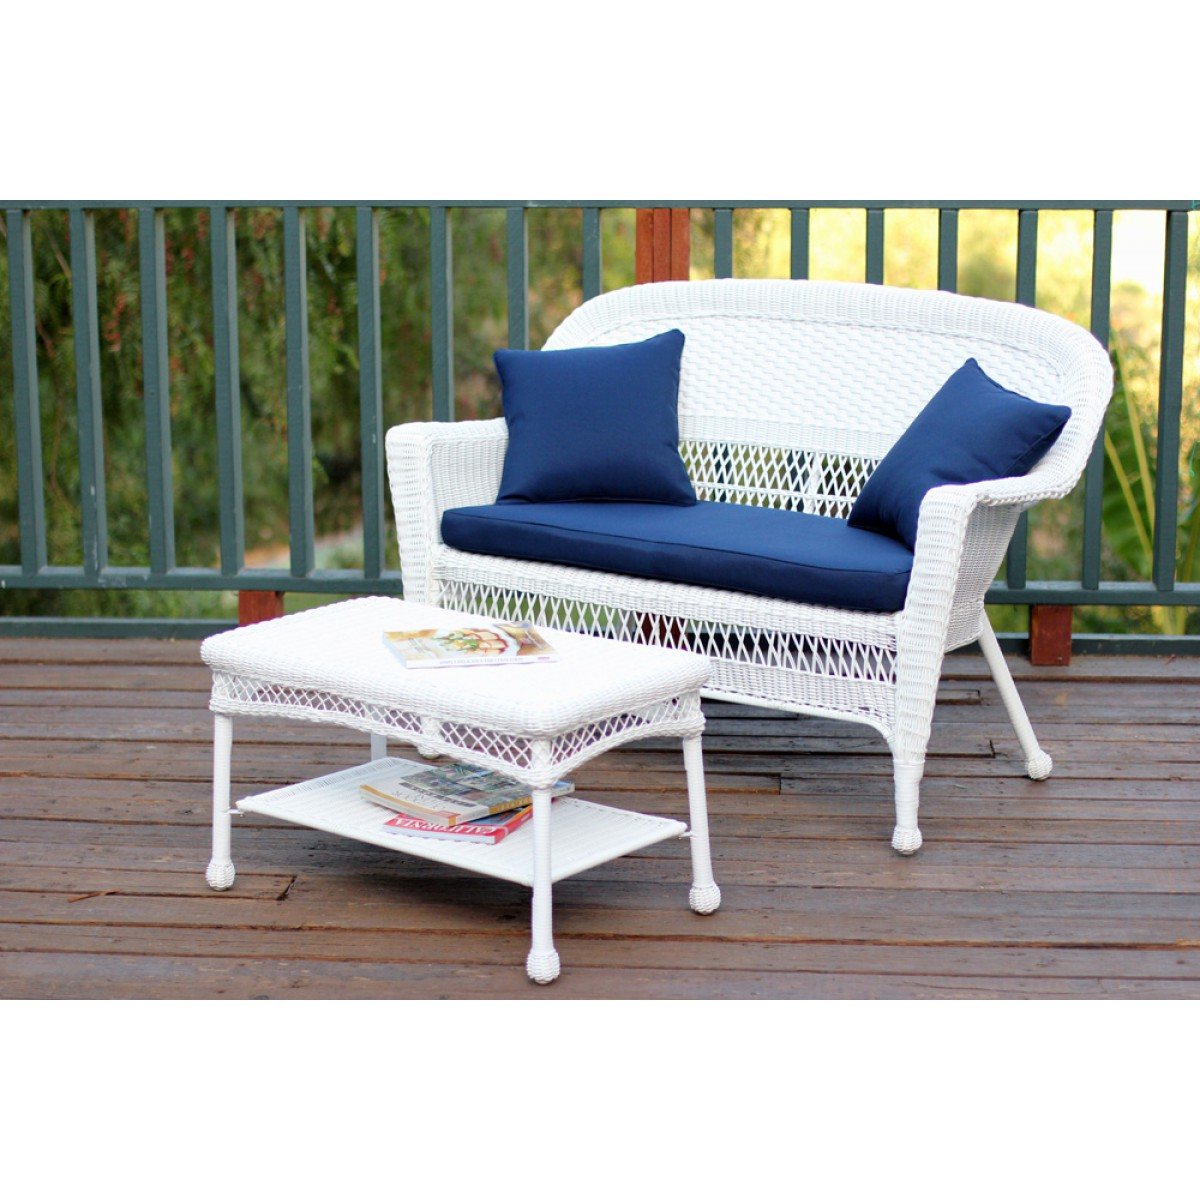 White Wicker Patio Love Seat And Coffee Table Set With